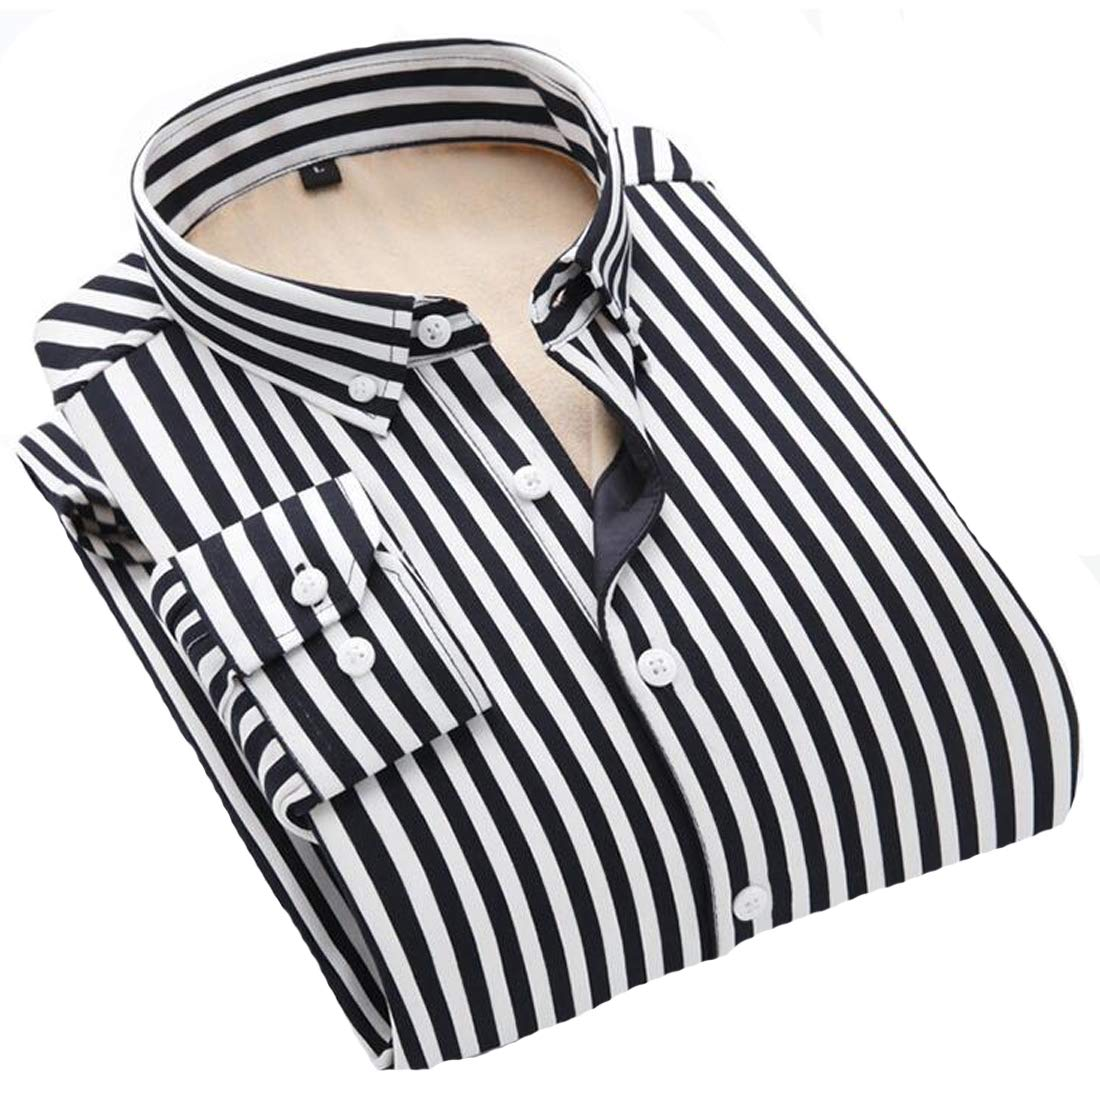 7b9f74c31 Black Button Up Shirt For Baby - DREAMWORKS